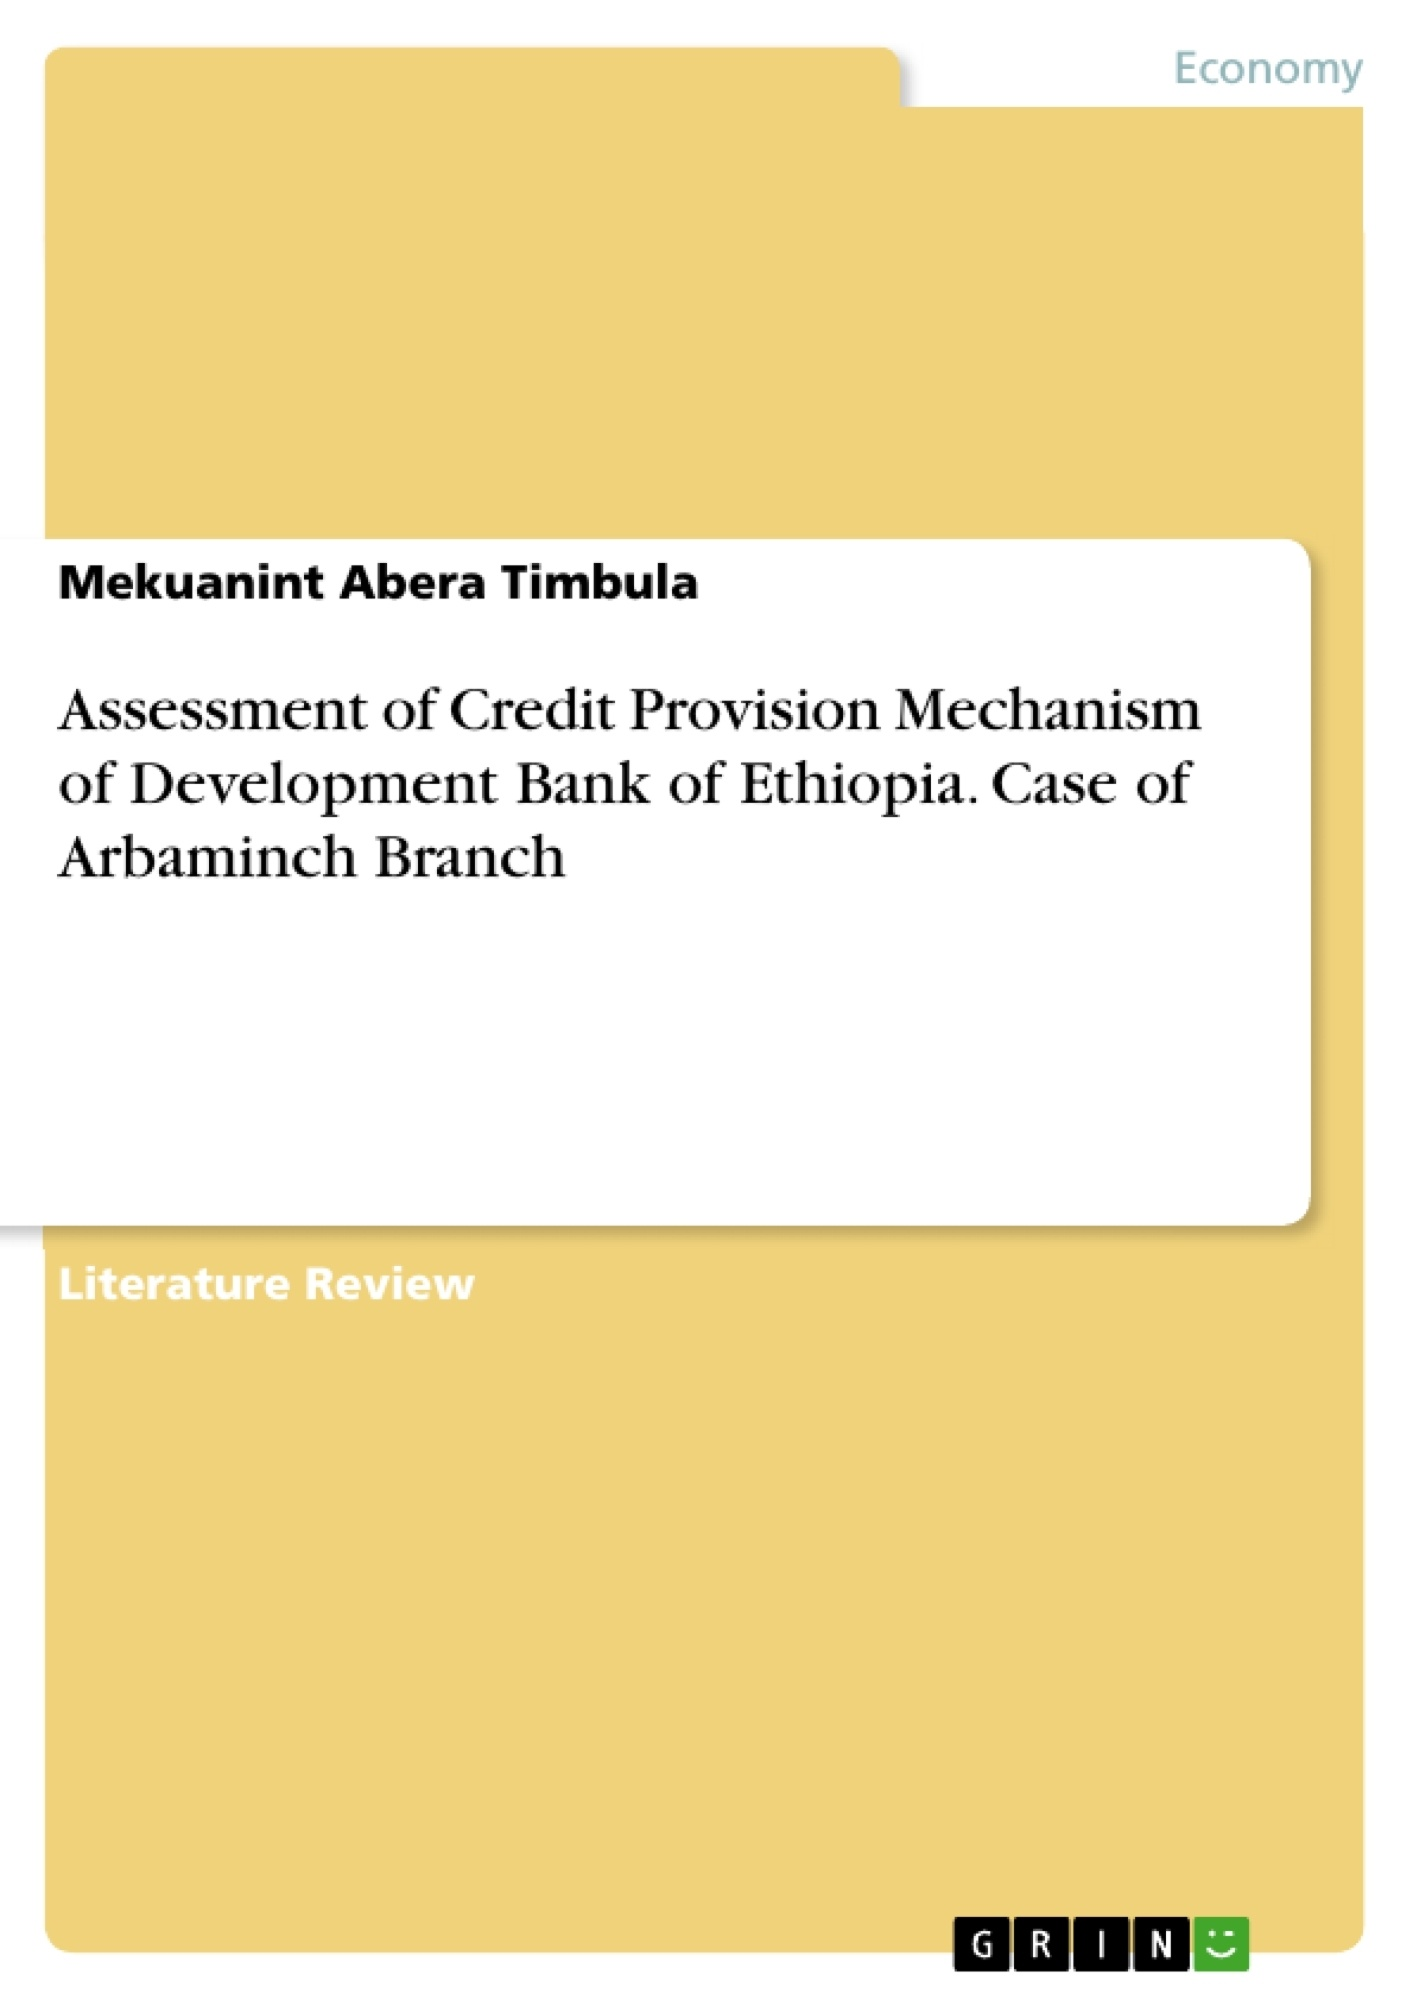 Title: Assessment of Credit Provision Mechanism of Development Bank of Ethiopia. Case of Arbaminch Branch